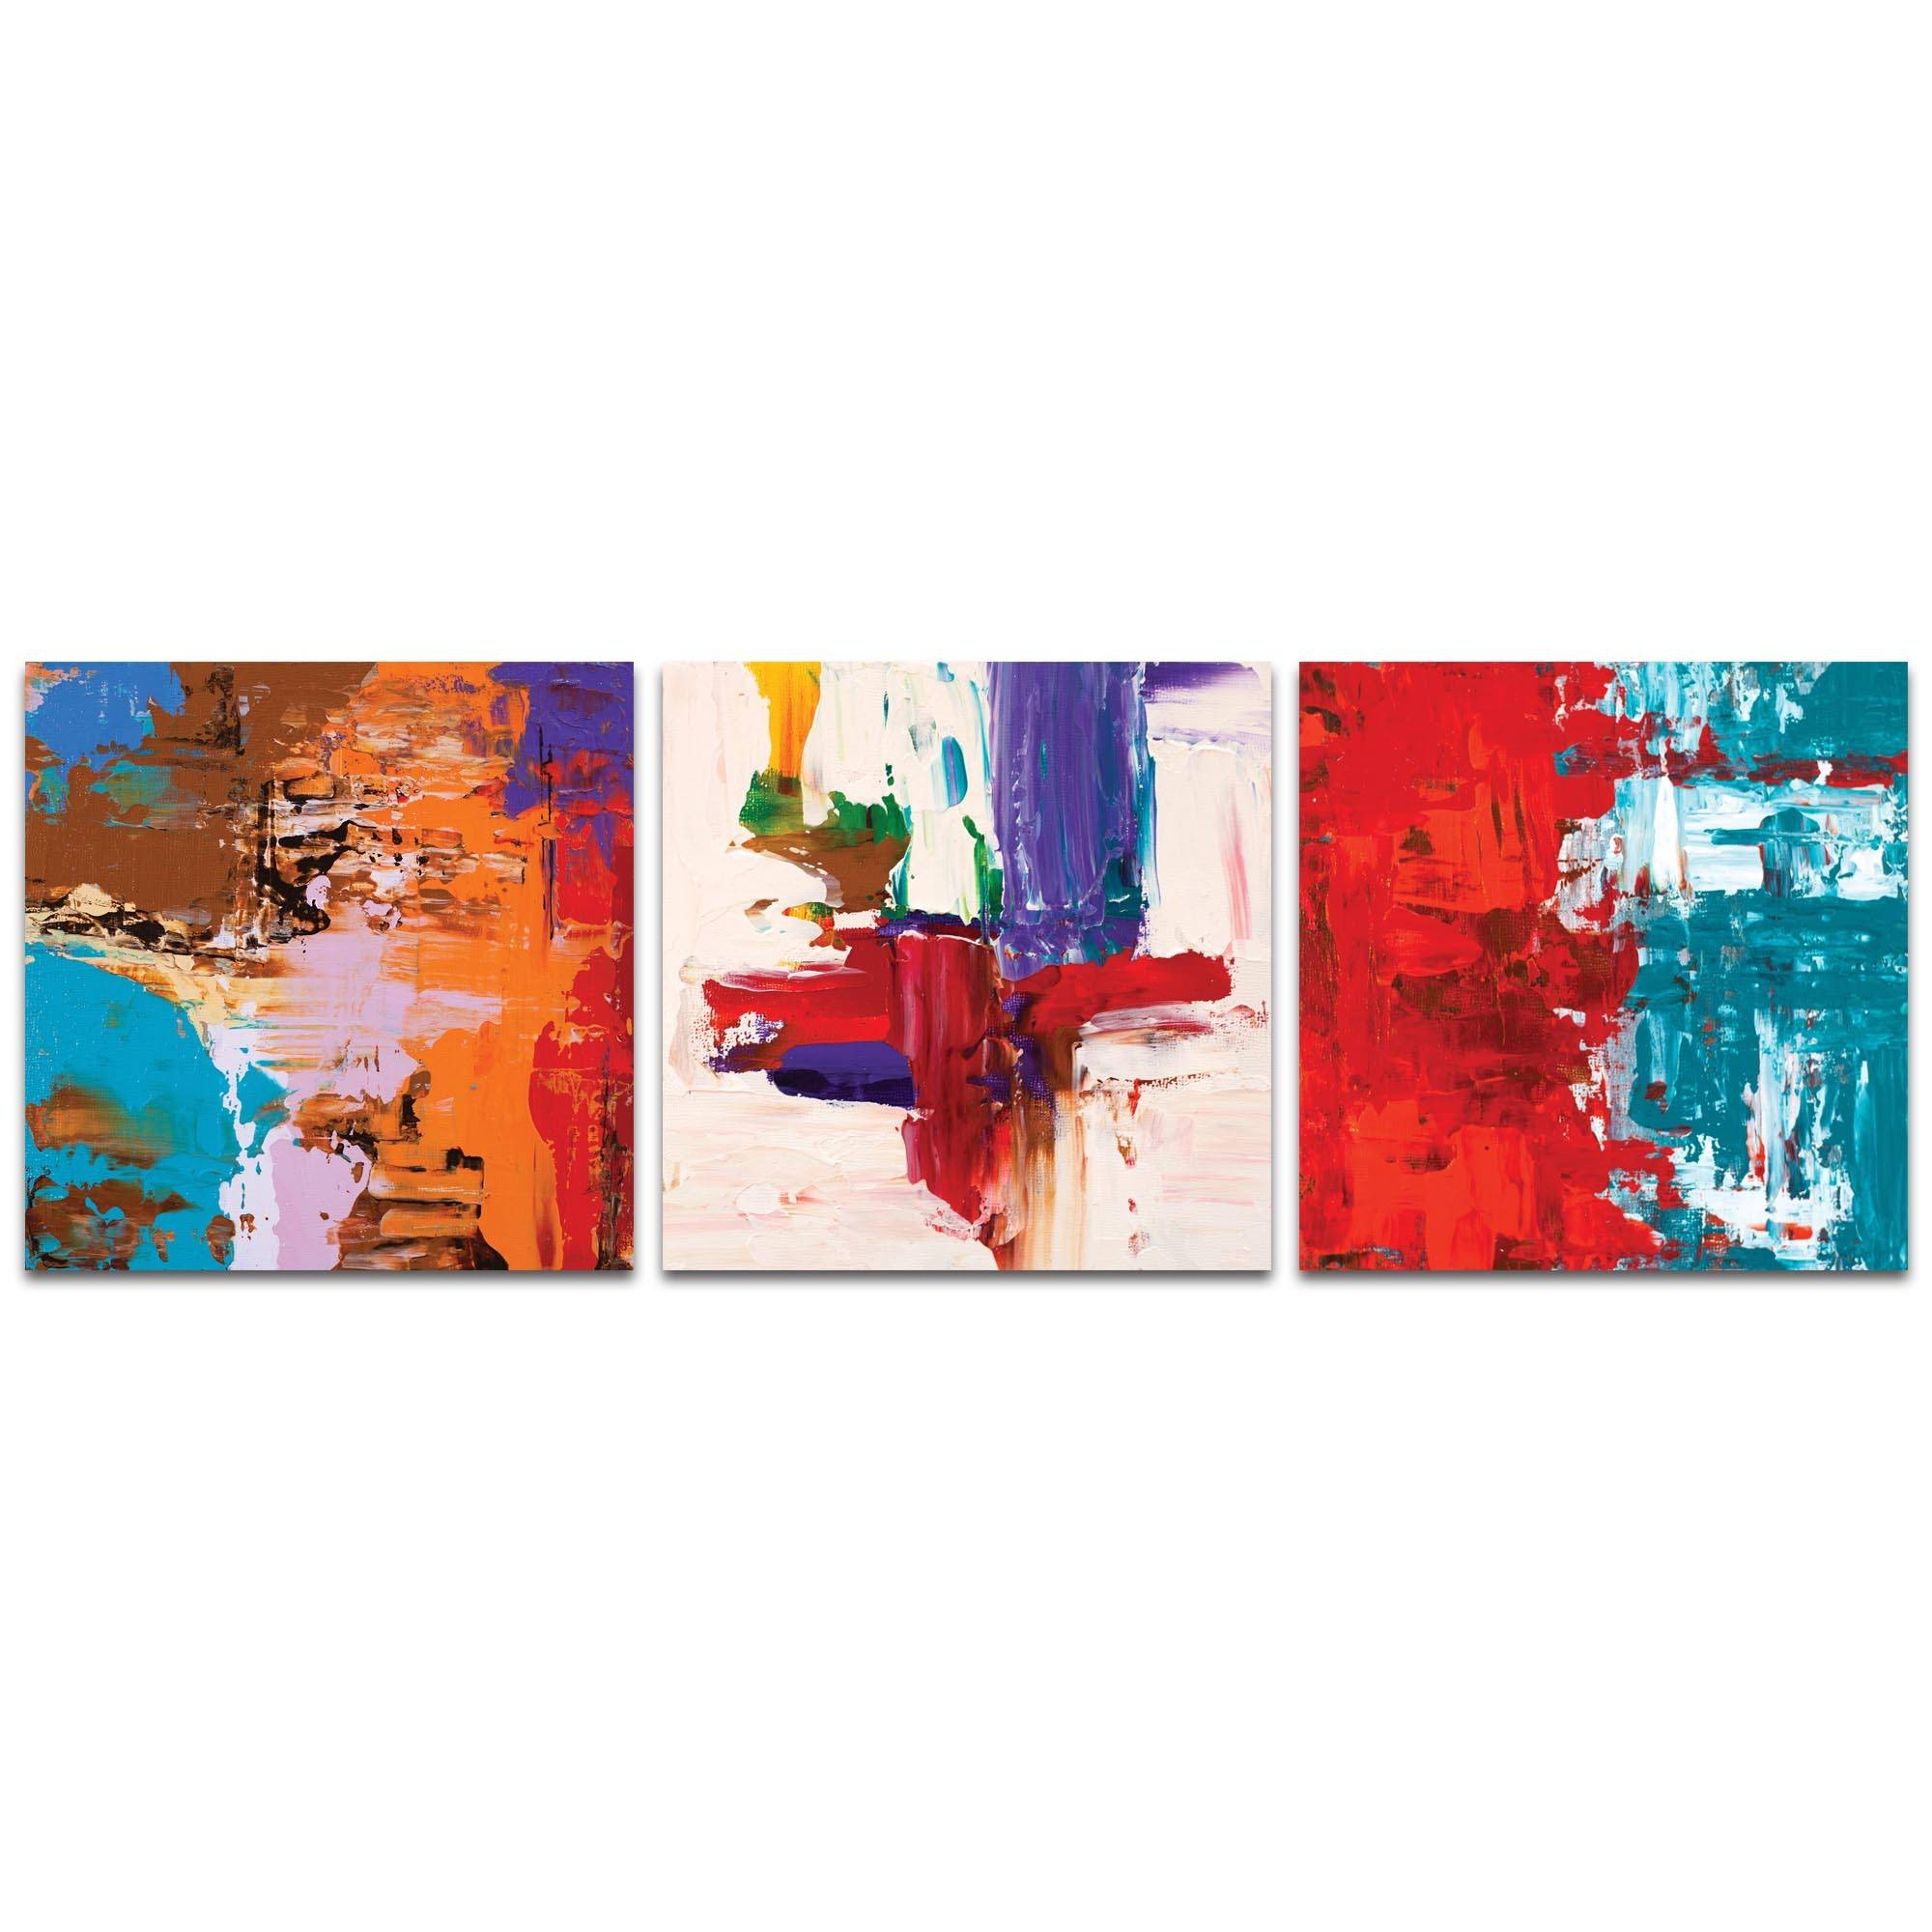 Metal Art Studio – Urban Triptych 5 Largeceleste Reiter For Most Recent Large Triptych Wall Art (View 13 of 20)